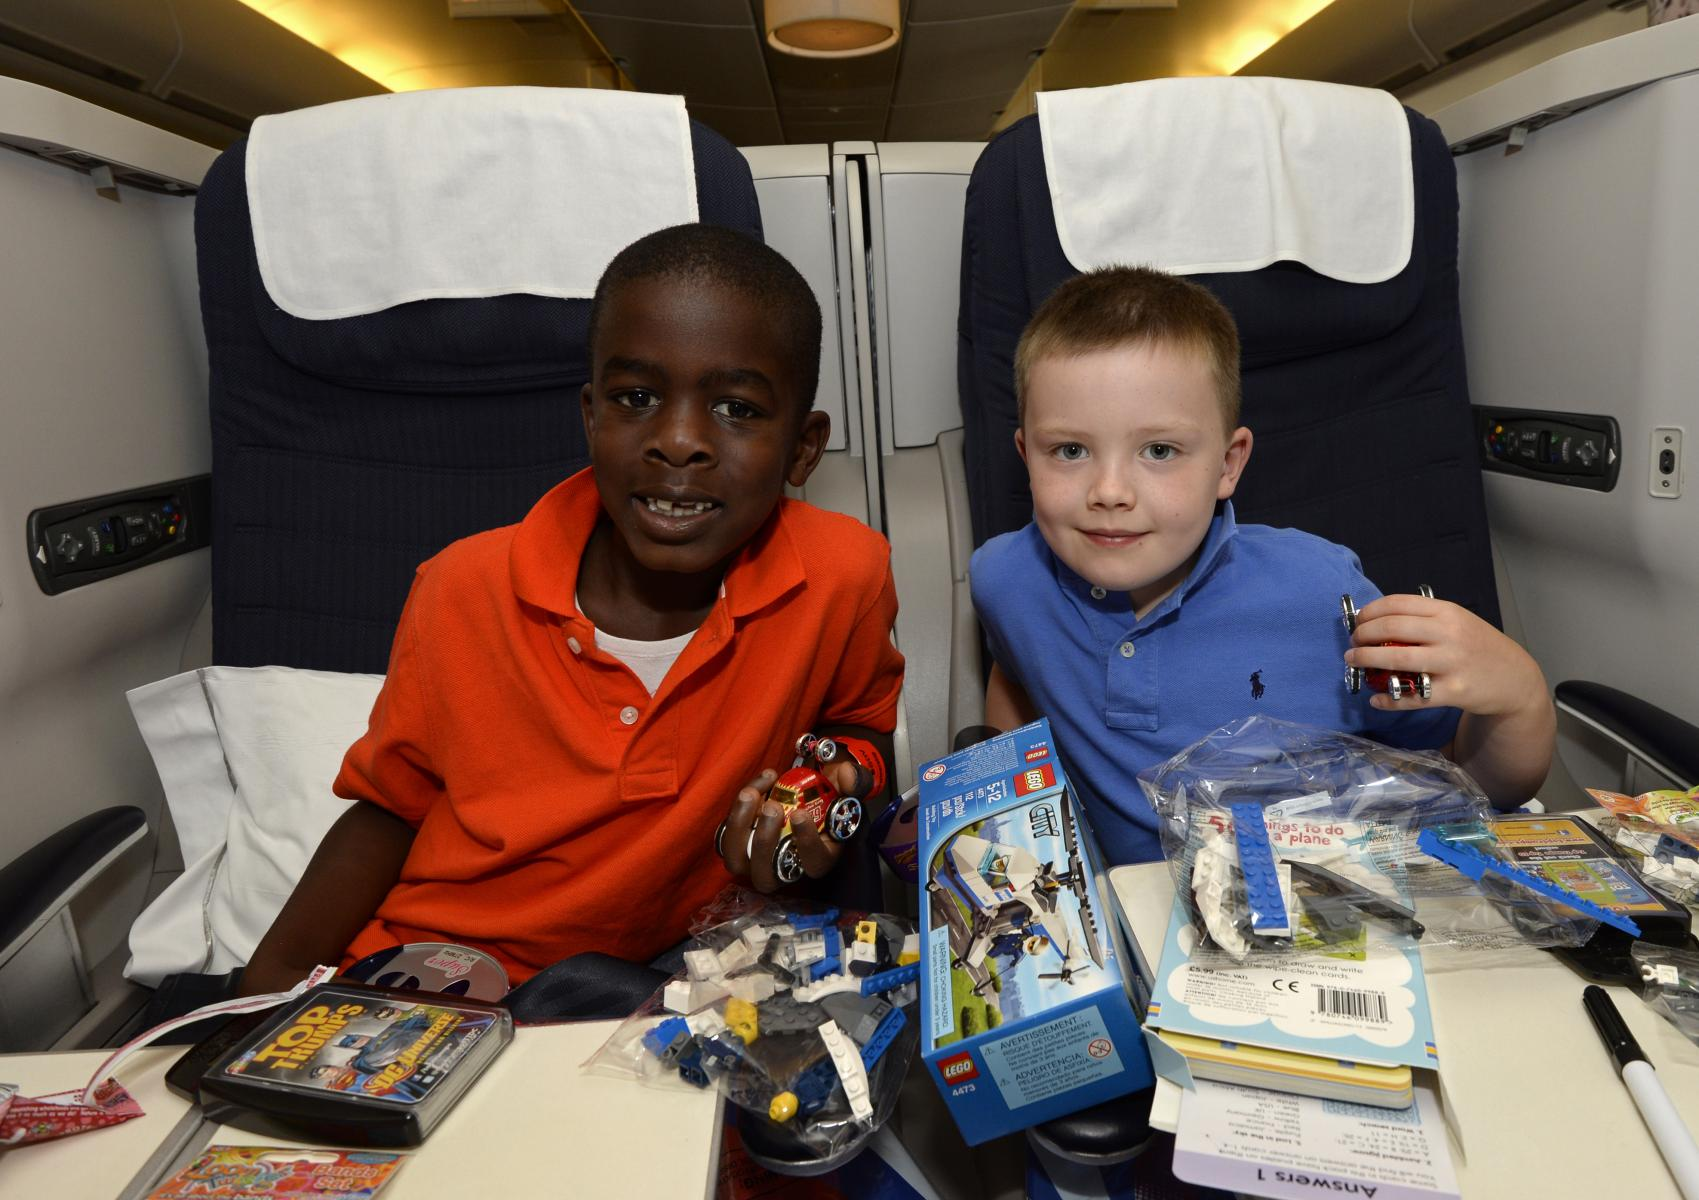 Play Doh Tops The List Of Toys For Plane Journeys